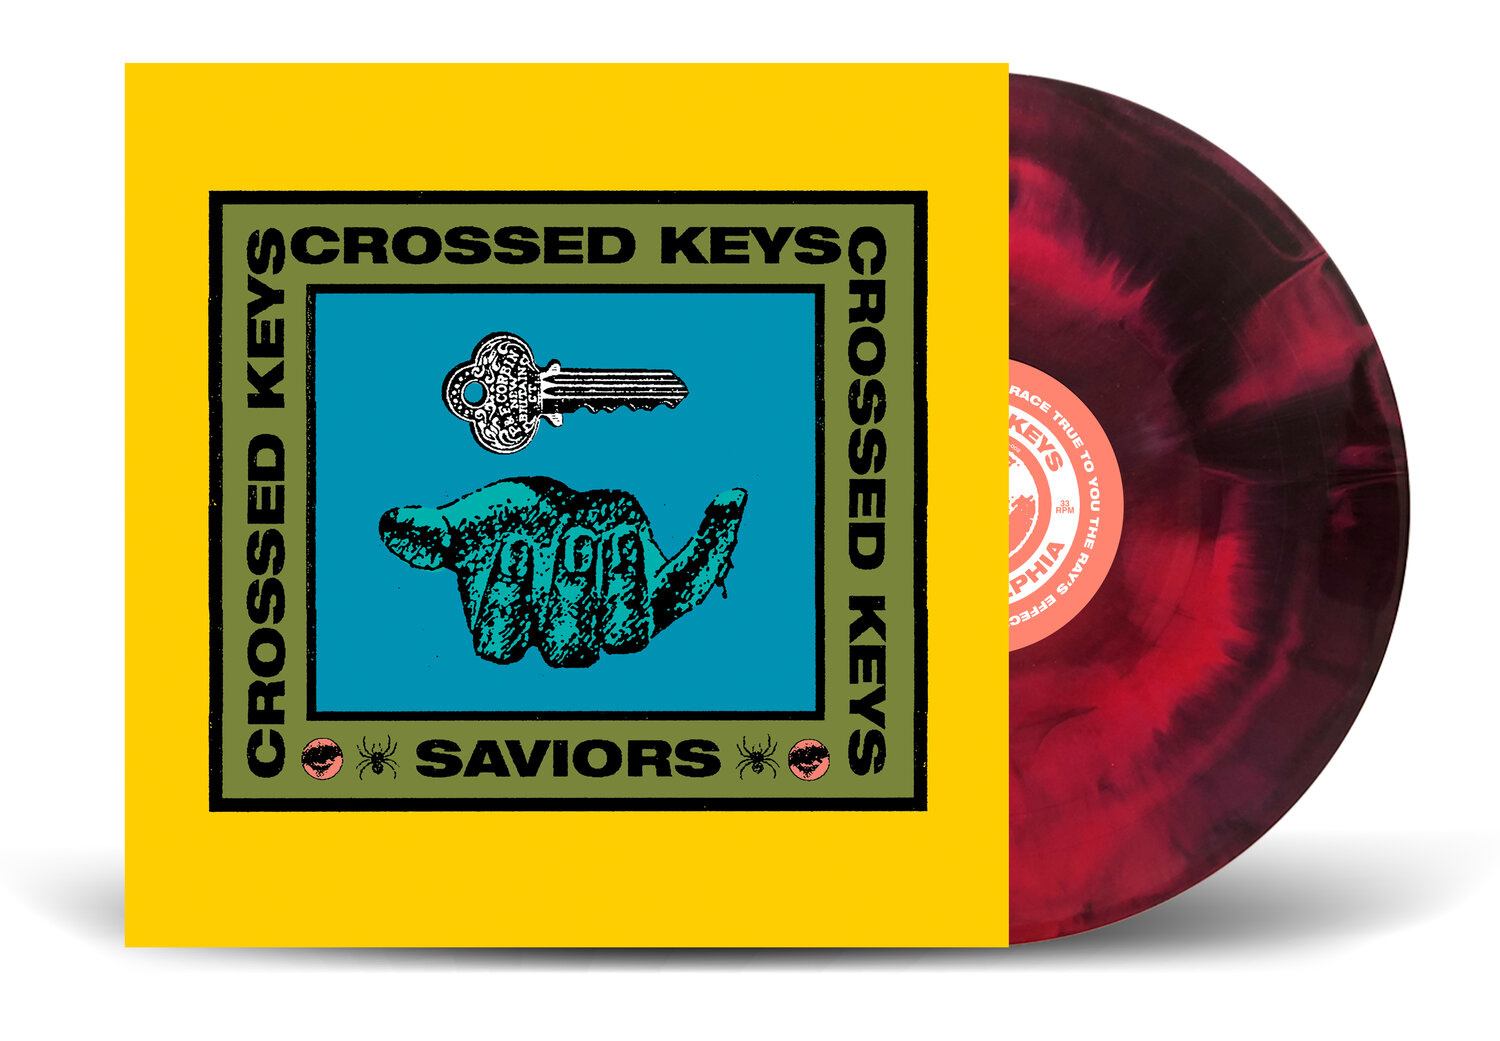 Crossed Keys - Saviors